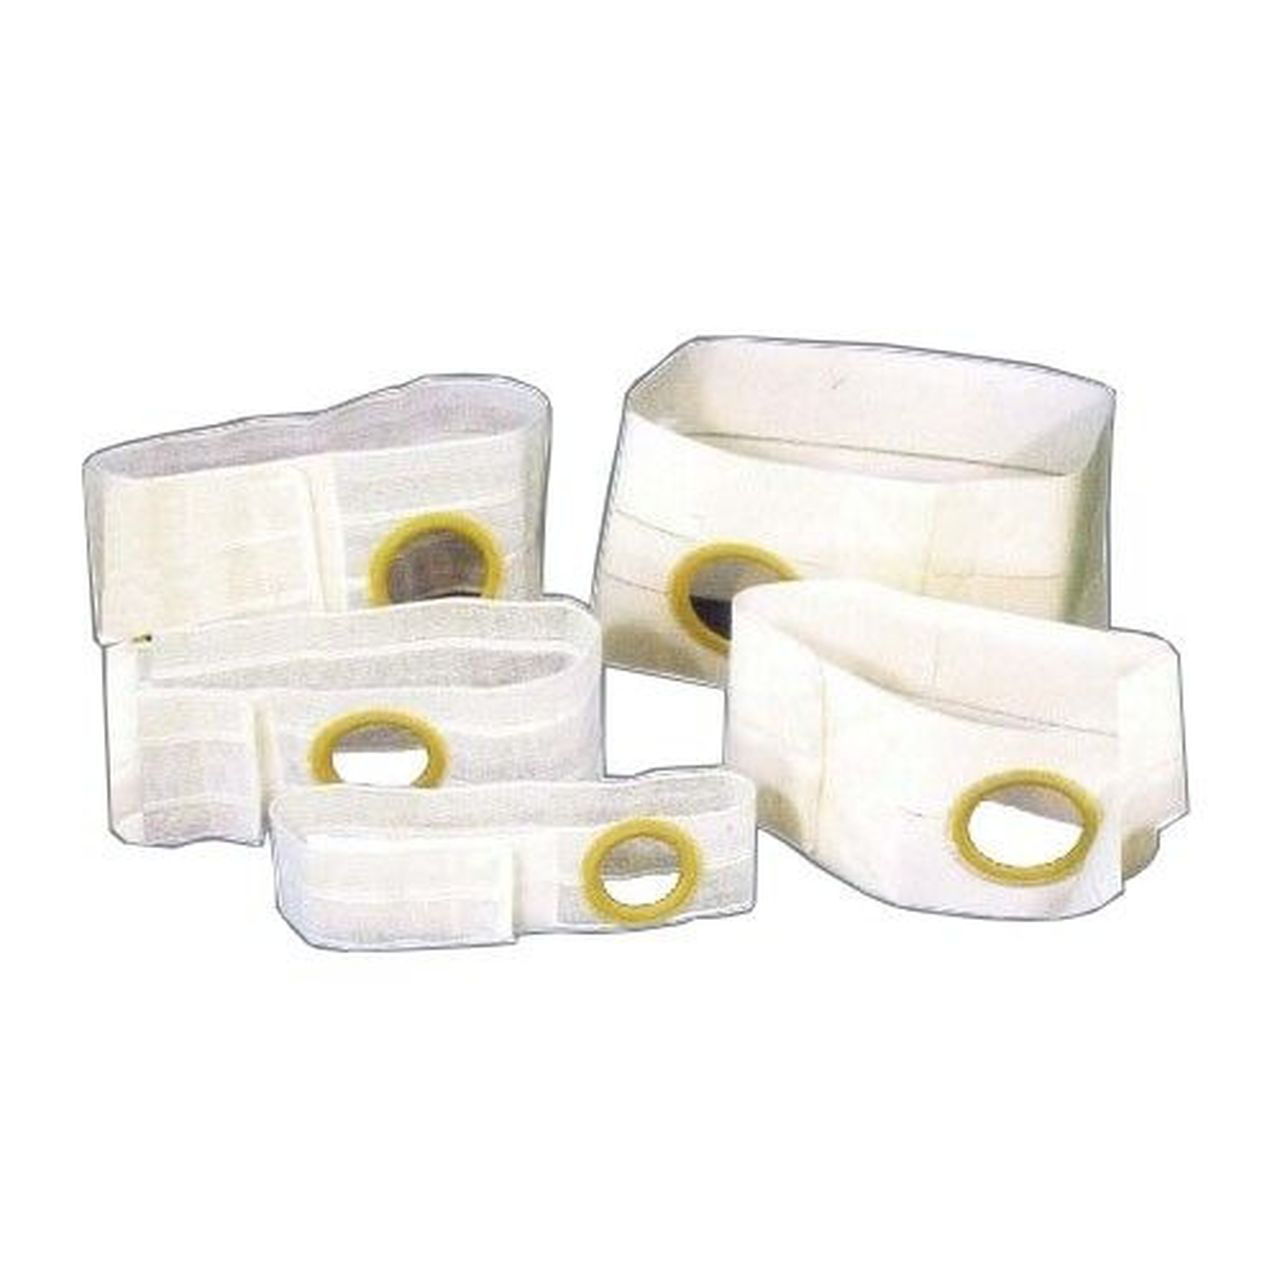 "Nu-Form Support Belt, 3-3/4"" Opening, 7"" Wide, X-Large, Left Sided Stoma"